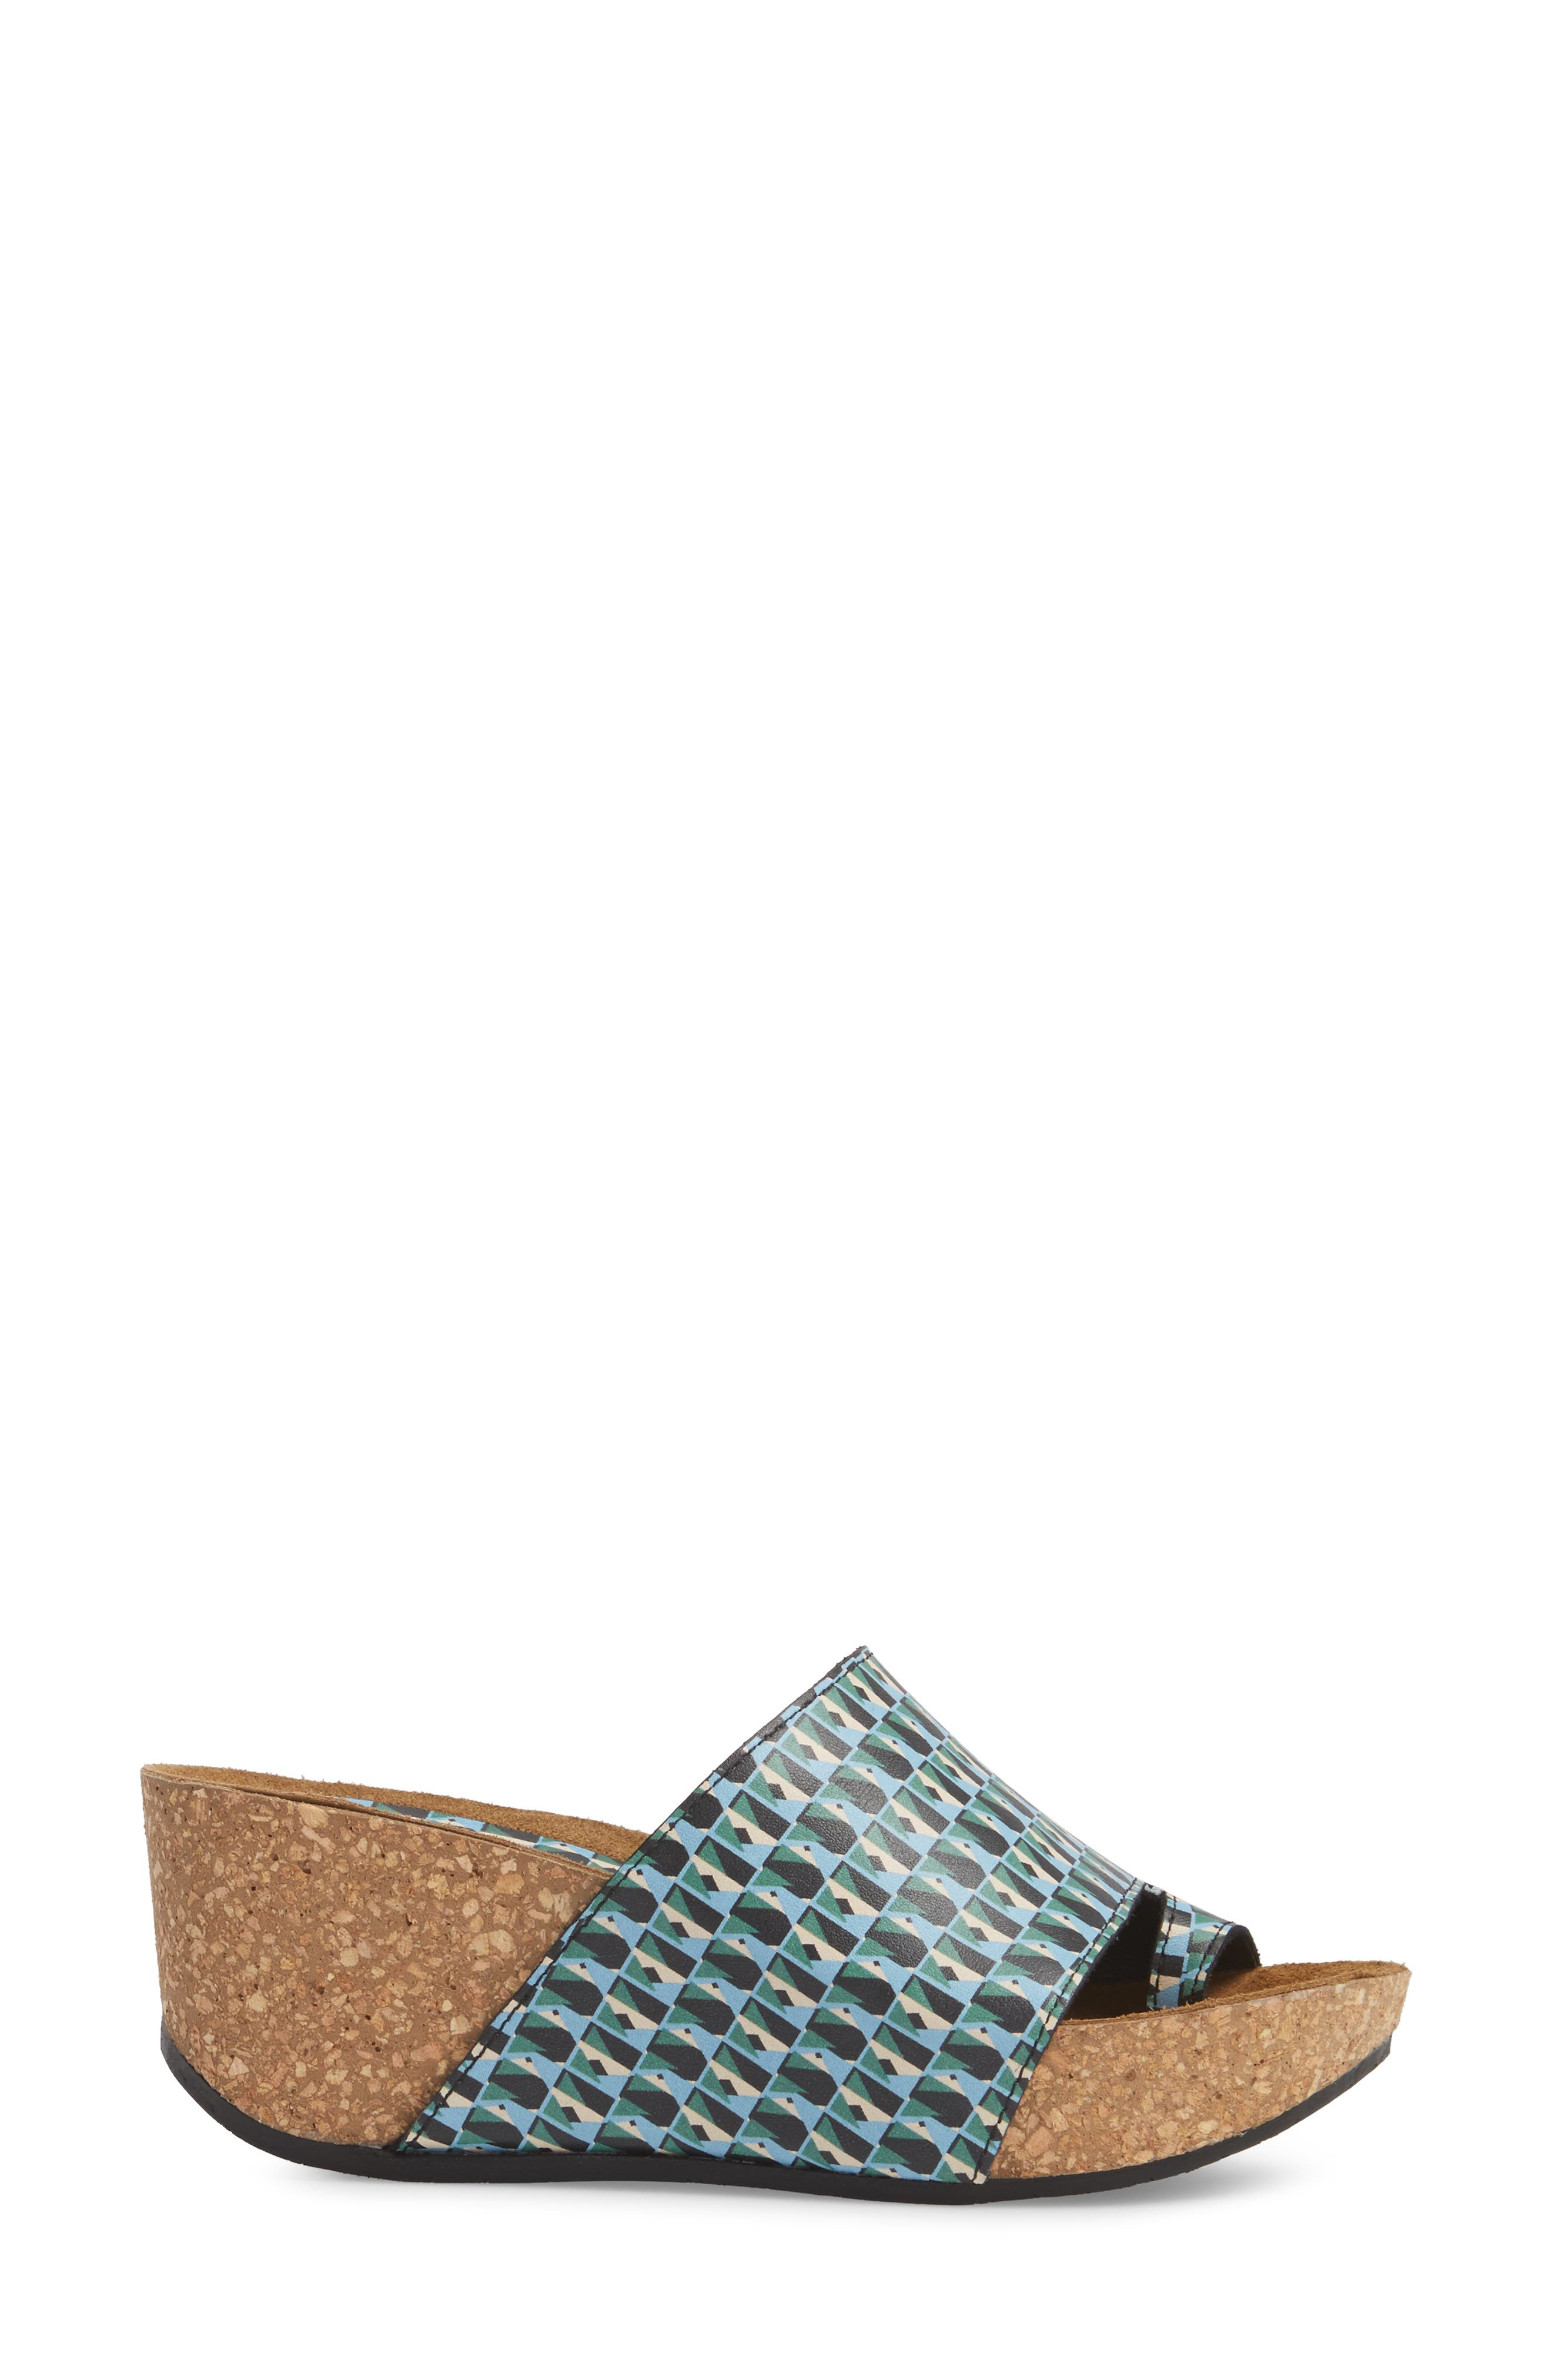 Donald J Pliner Ginie Platform Wedge Sandal,                             Alternate thumbnail 18, color,